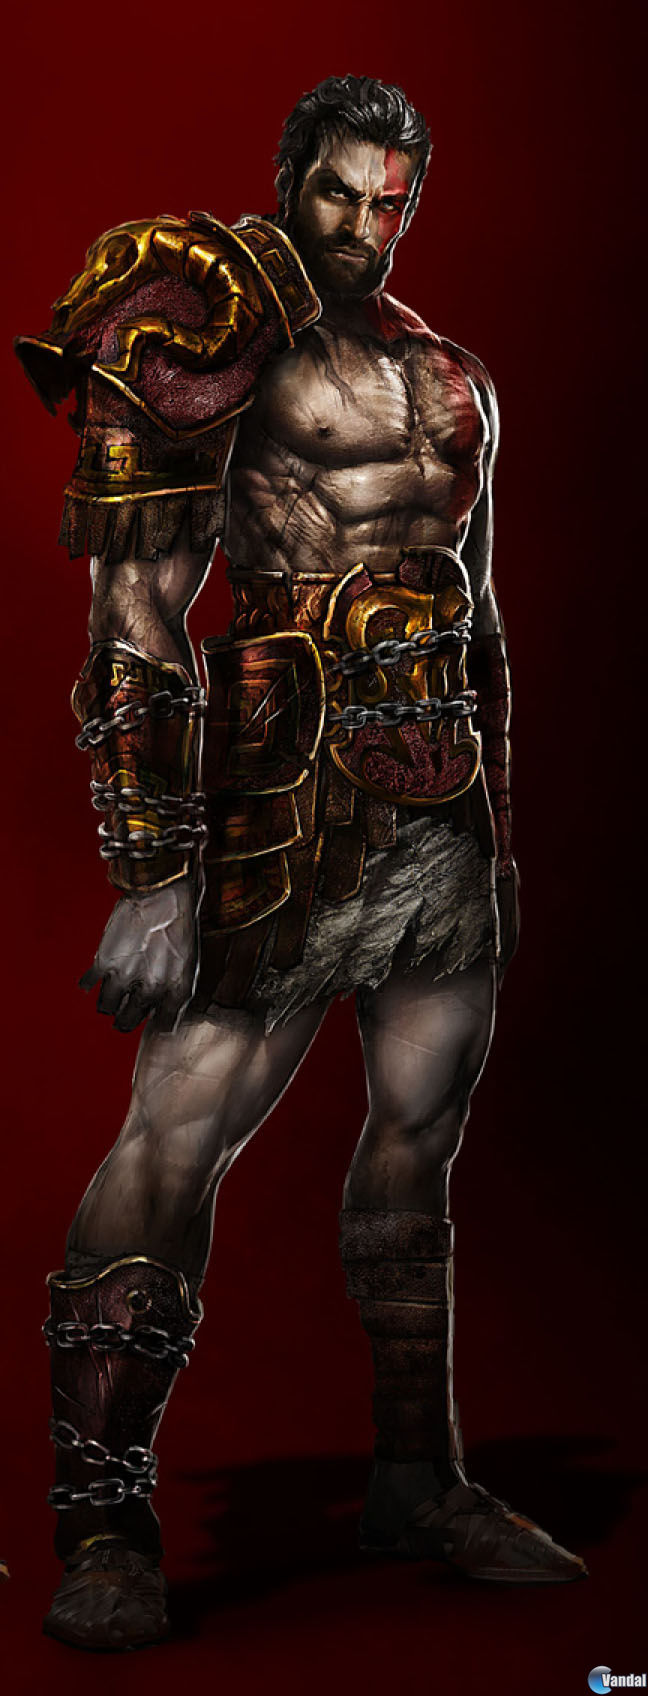 Deimos, el hermano de Kratos De God of War